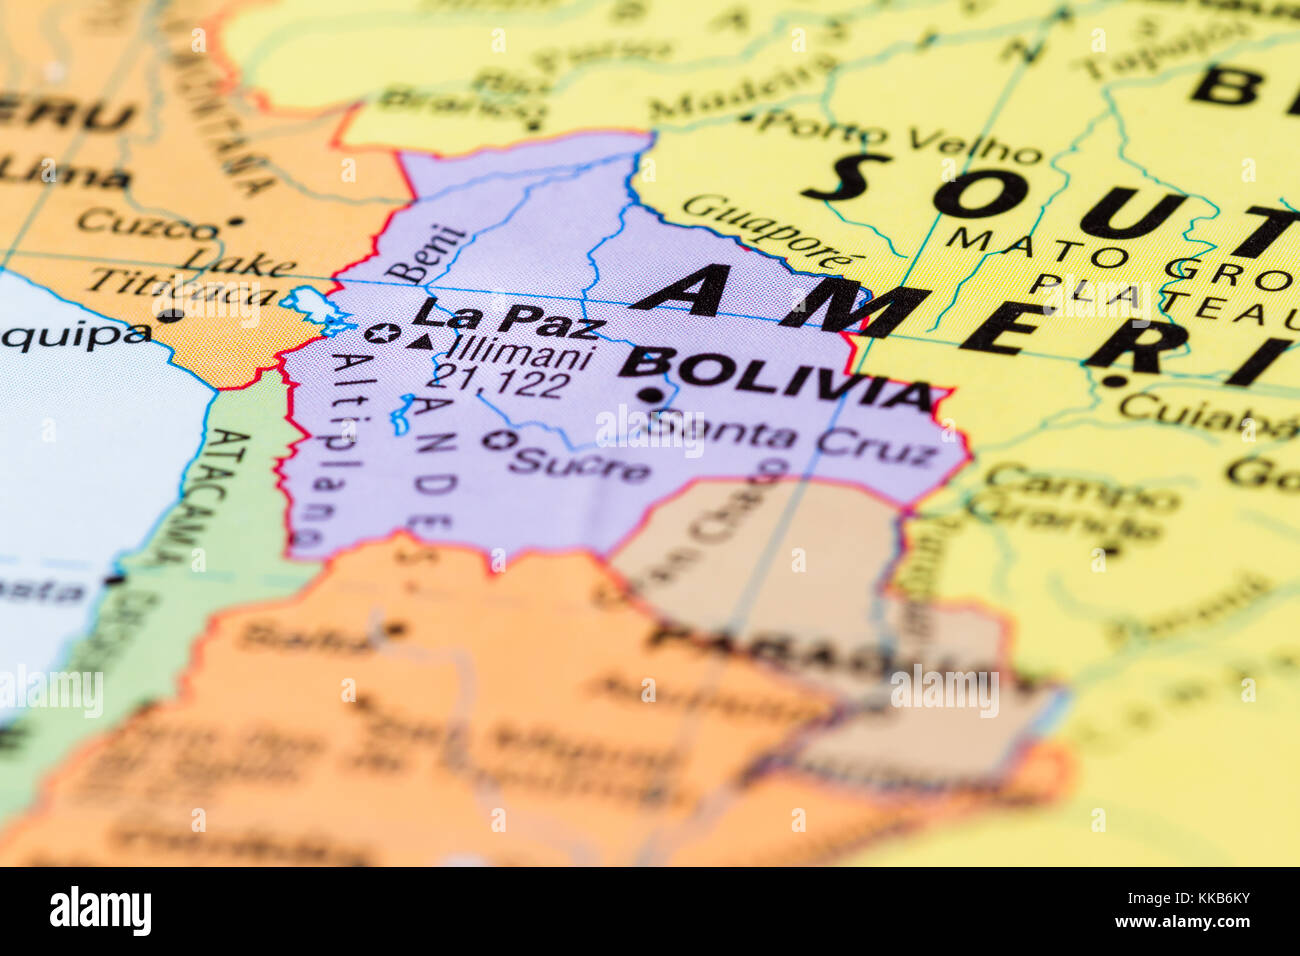 Picture of: Close Up Of The City Of La Paz Bolivia On A World Map Stock Photo Alamy